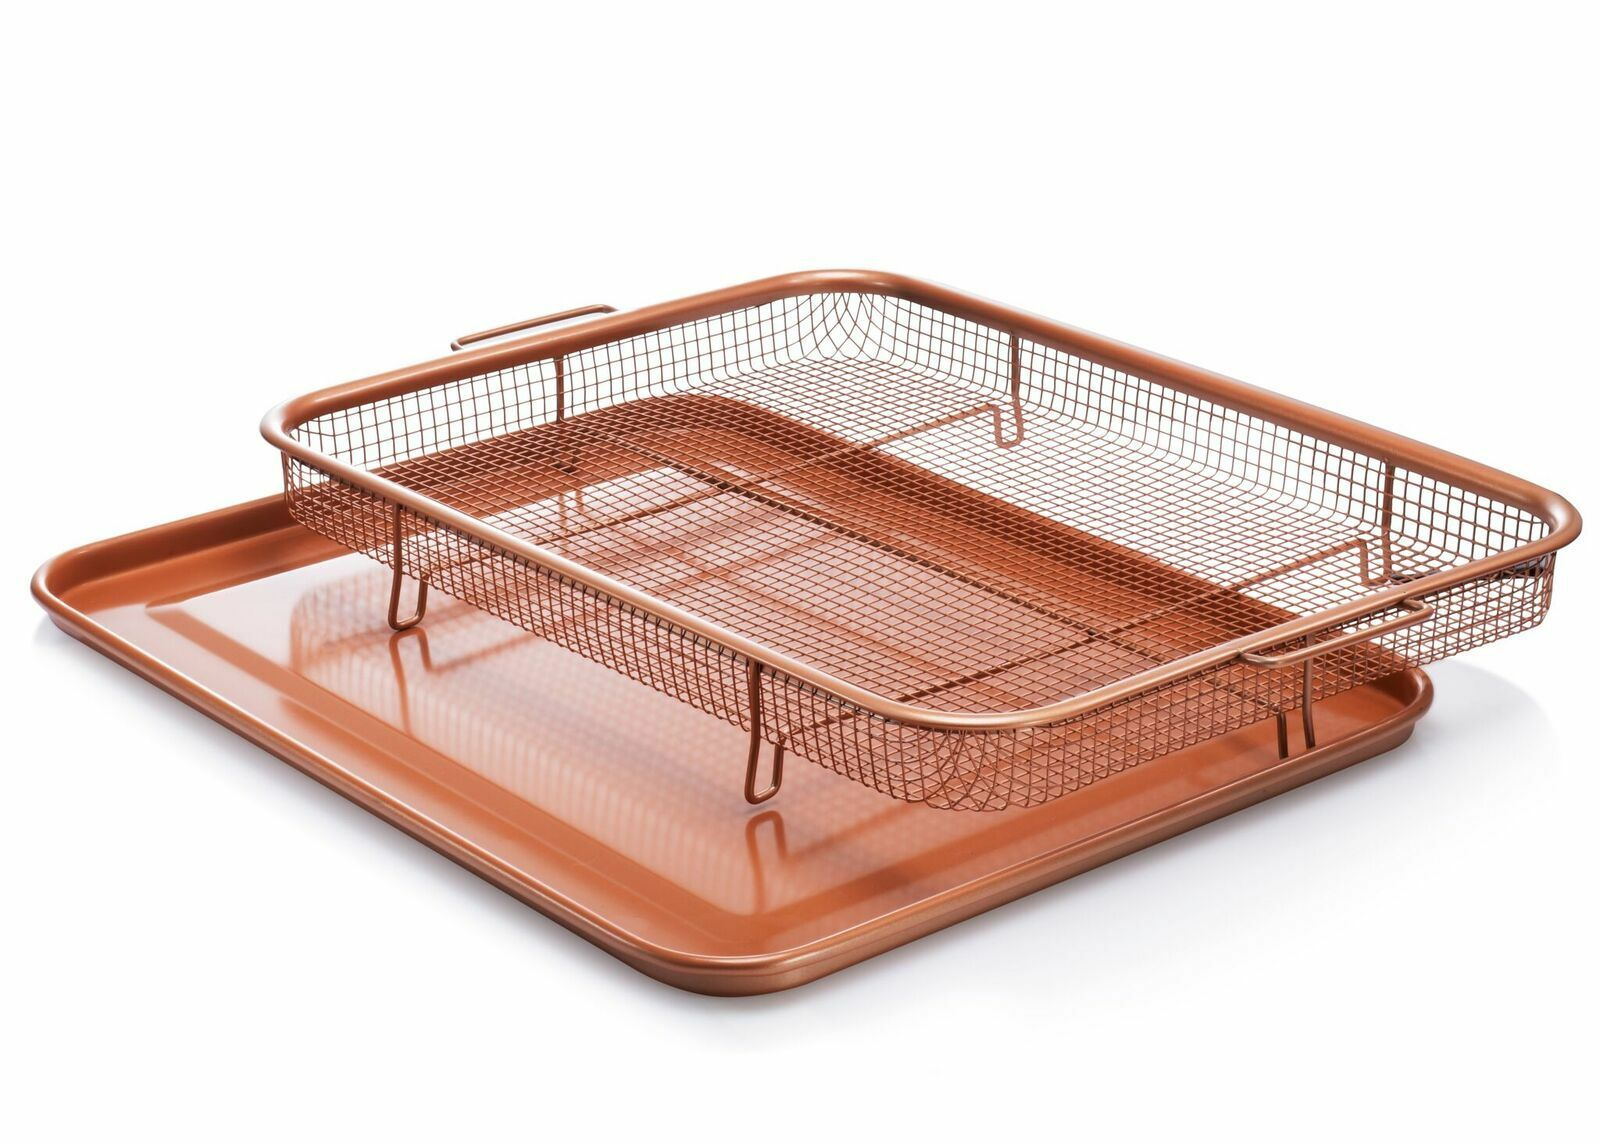 Gotham Steel Copper Crisper Tray XXL - AIR FRY IN YOUR OVEN